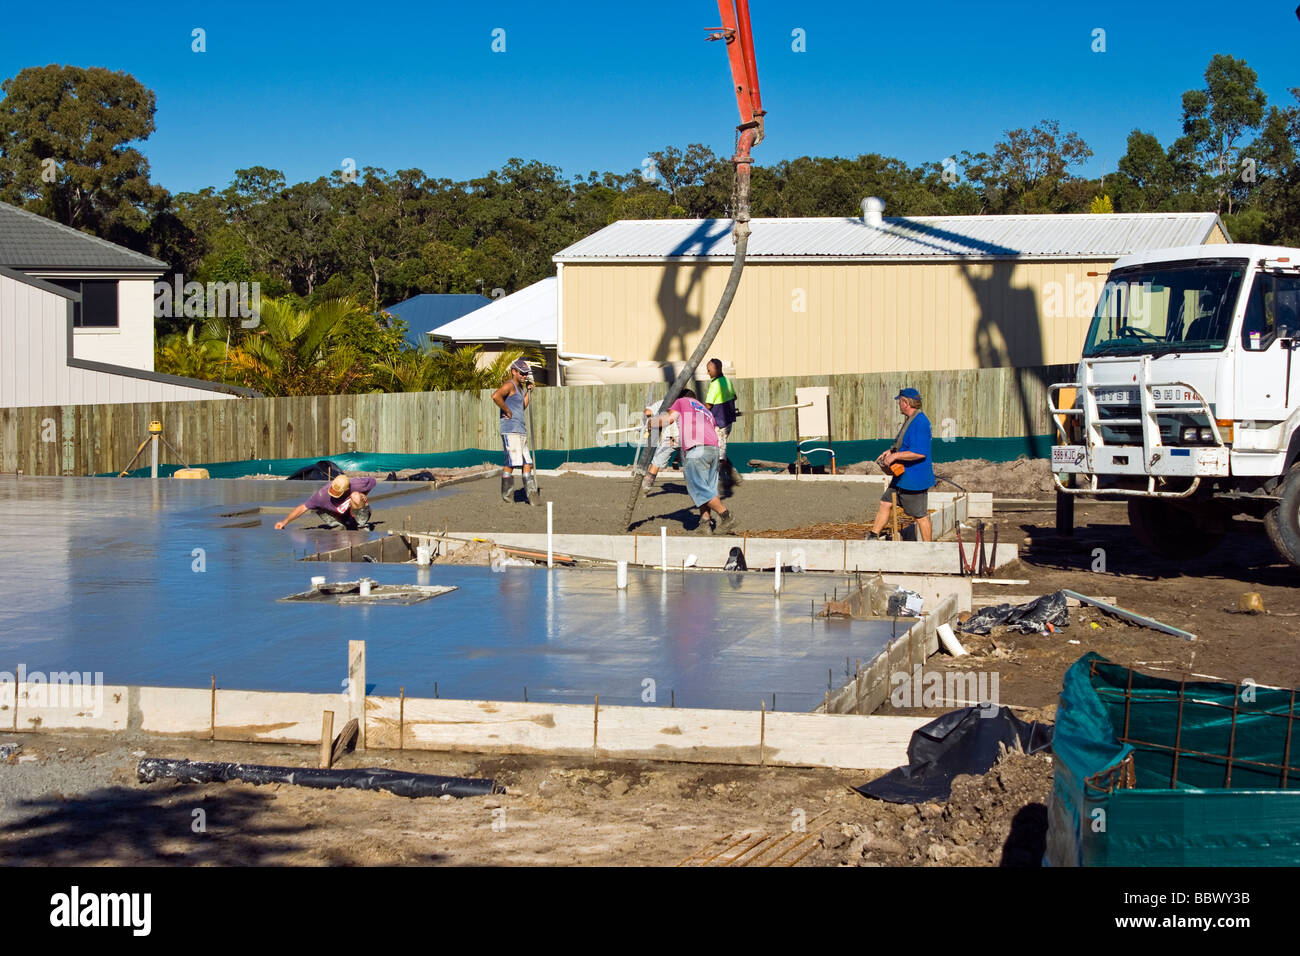 Pouring A Concrete Slab For A New House In Australia